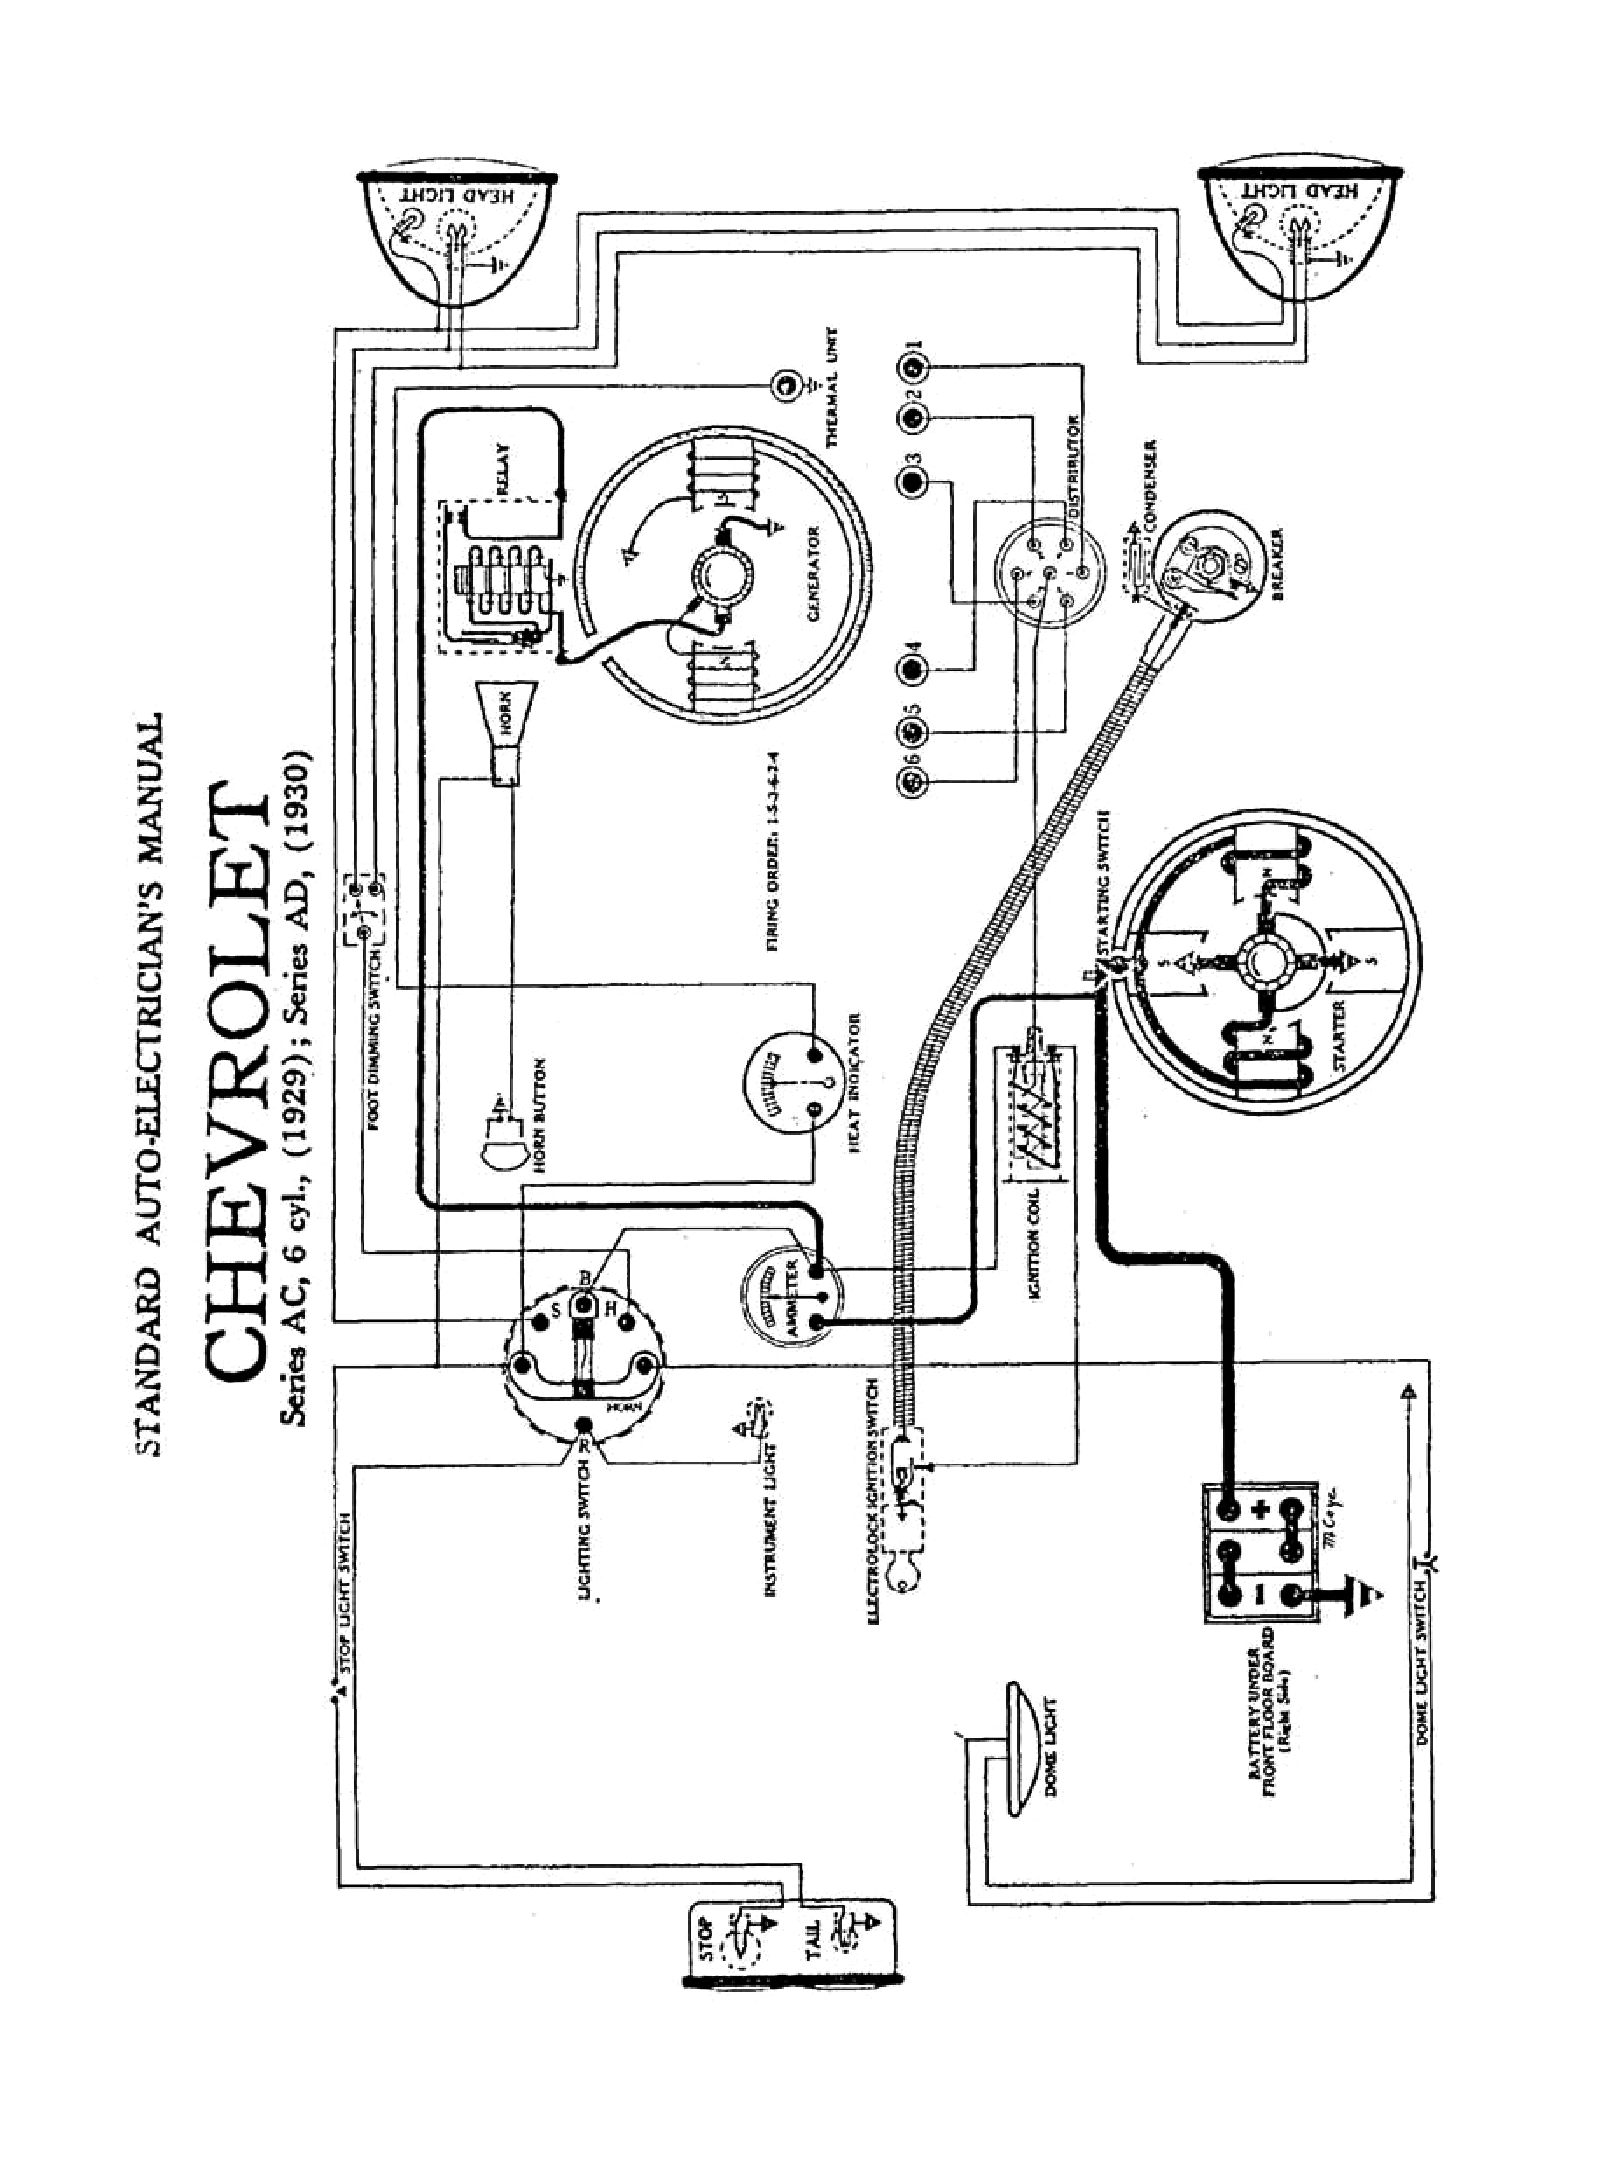 Chevy Wiring Diagrams Fender Mustang Diagram Free Download Schematic 1930 Series Ad Model 1931